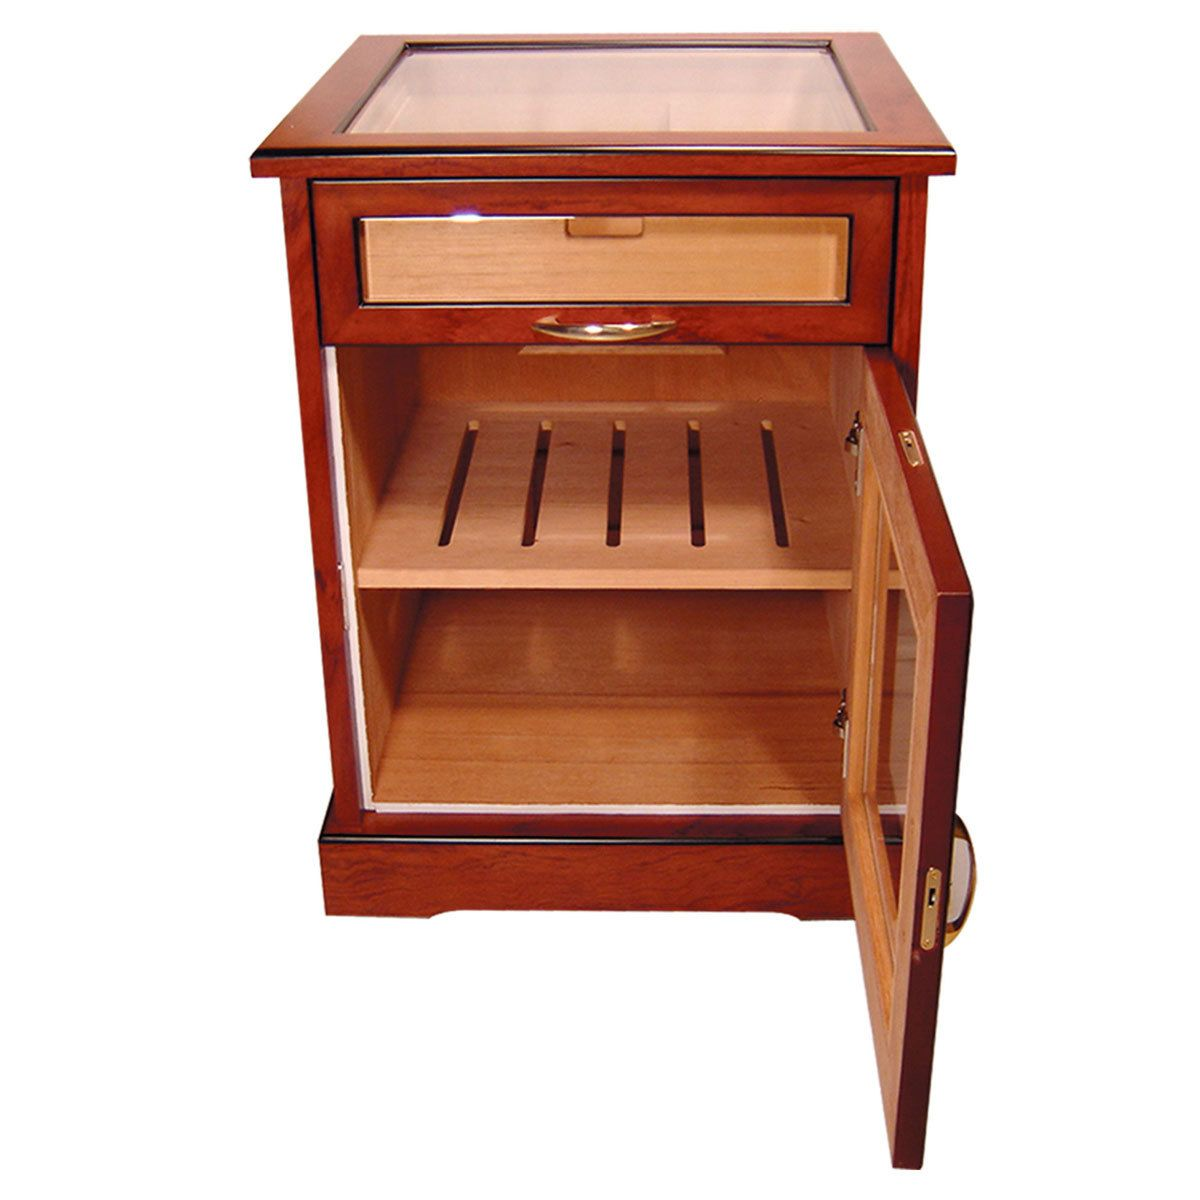 CubanCrafters   Cuban Crafters Cabinet Humidors End Table Humidor For 600  Cigars Free Shipping, $499.99